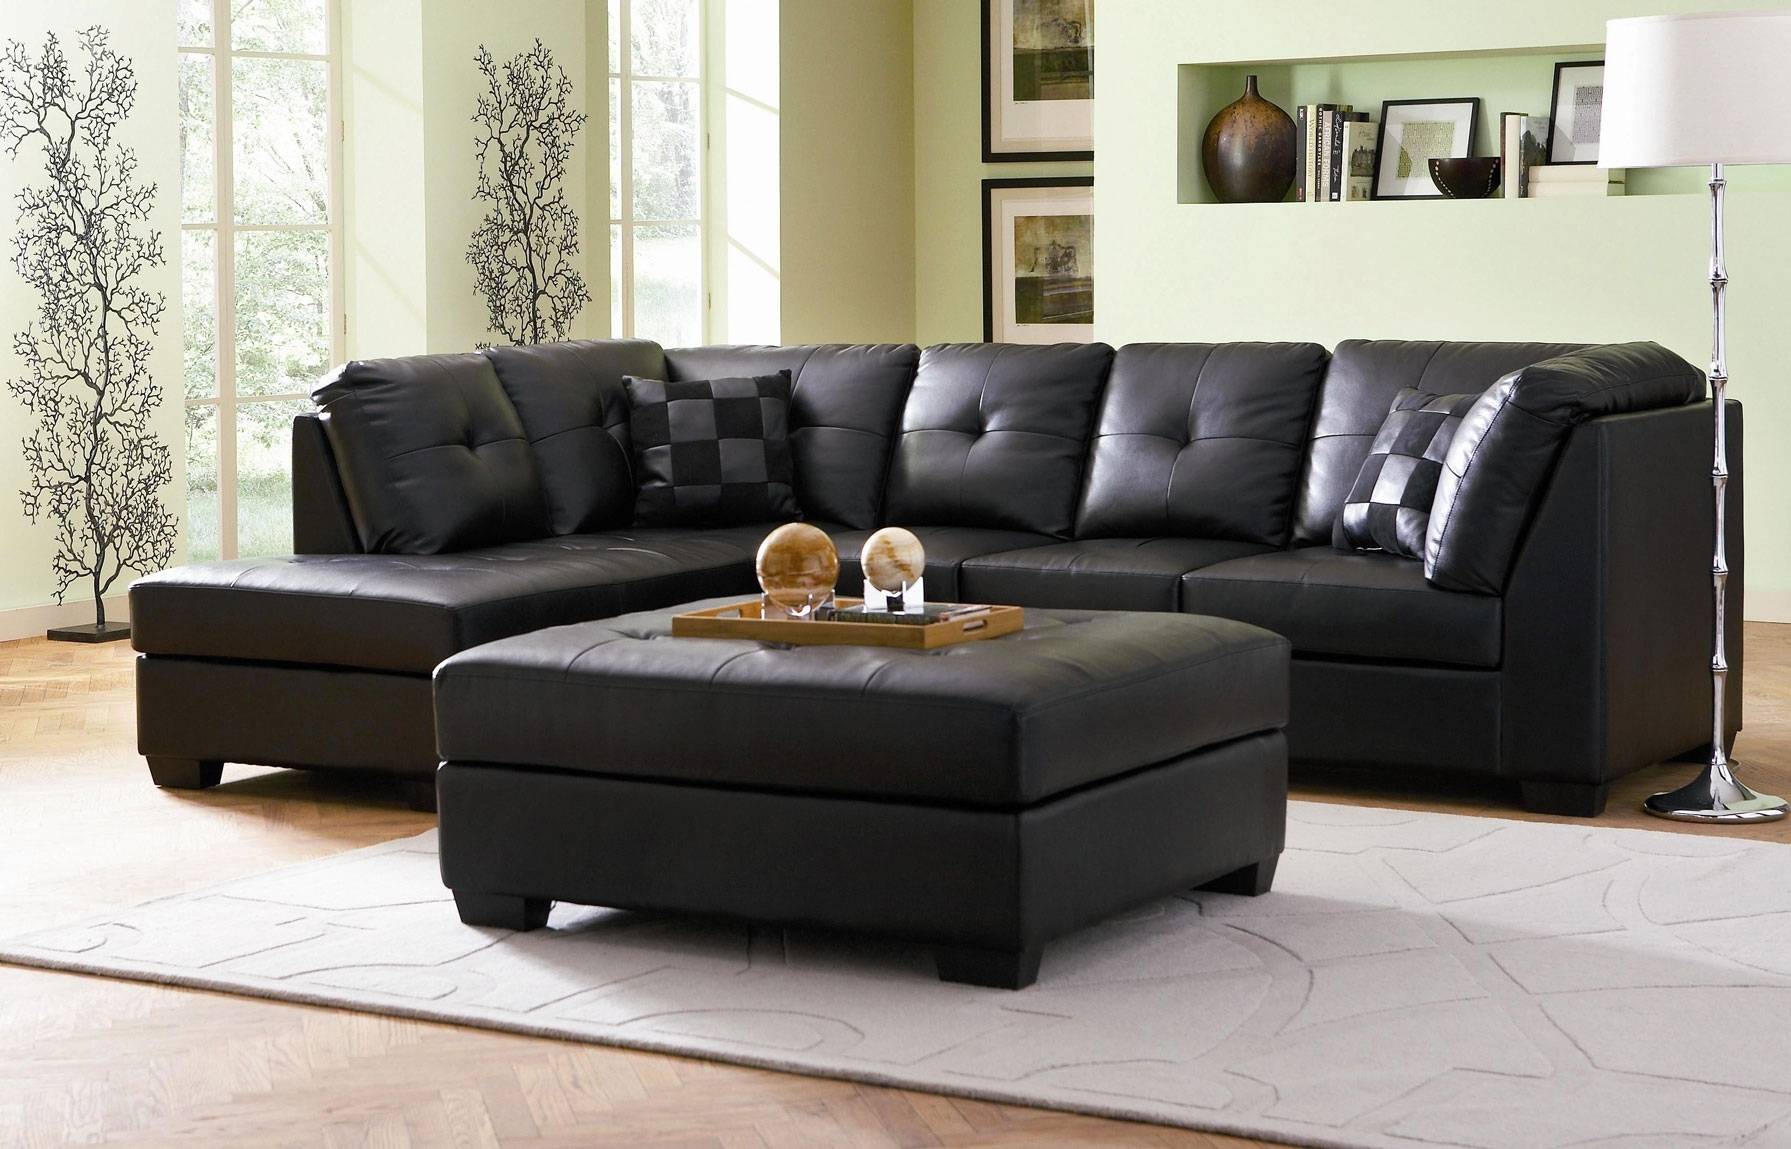 Sectional Sofa: The Best Sectional Sofas Charlotte Nc Sofa Mart Throughout Wilmington Nc Sectional Sofas (View 8 of 10)